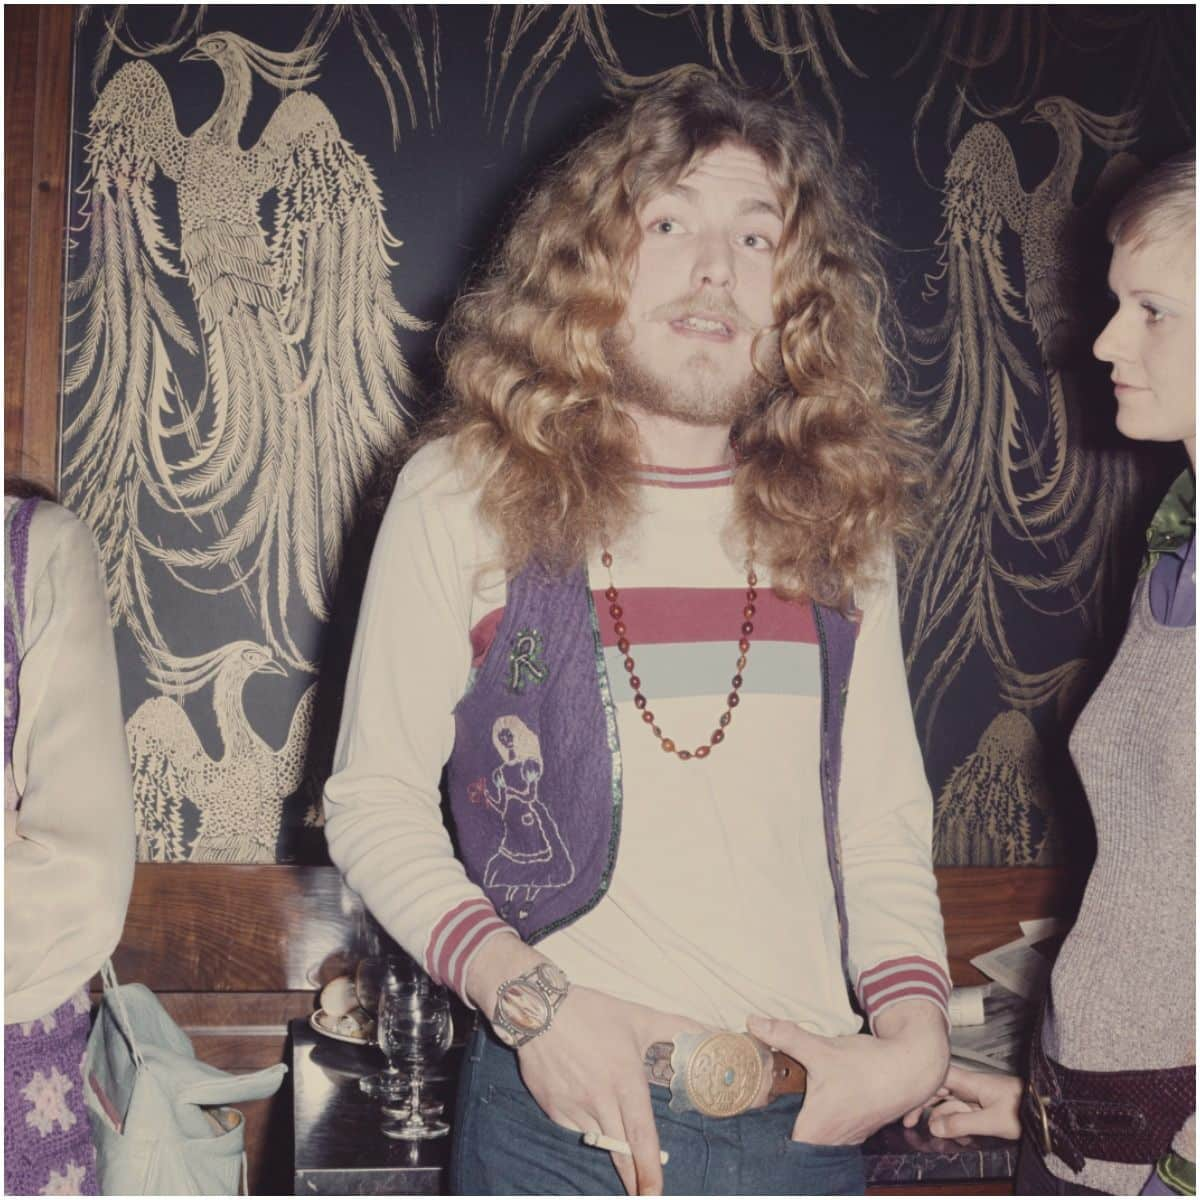 what is the net worth of Robert Plant